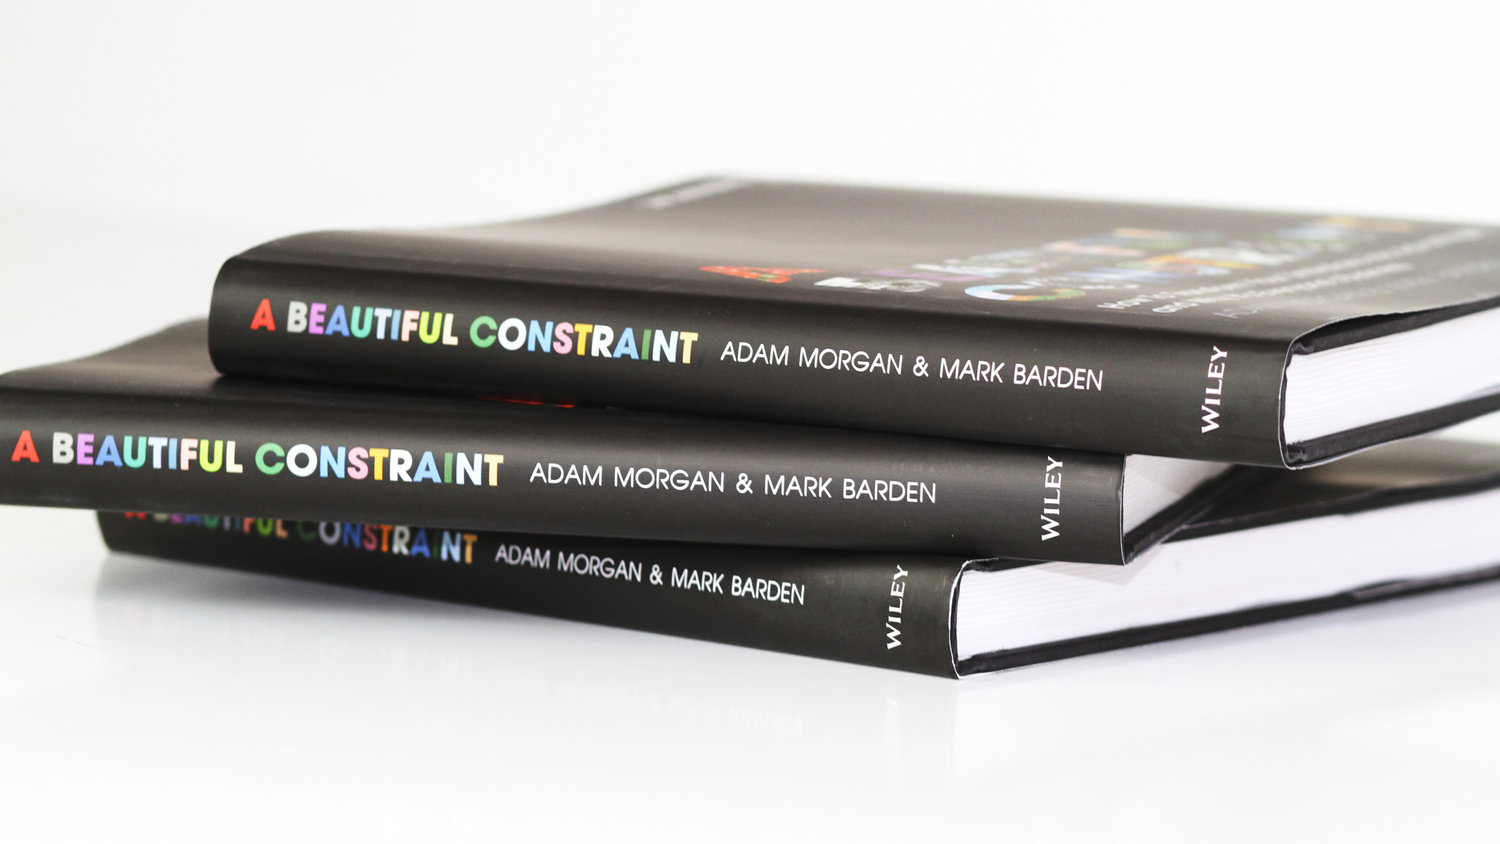 A Beautiful Constraint book